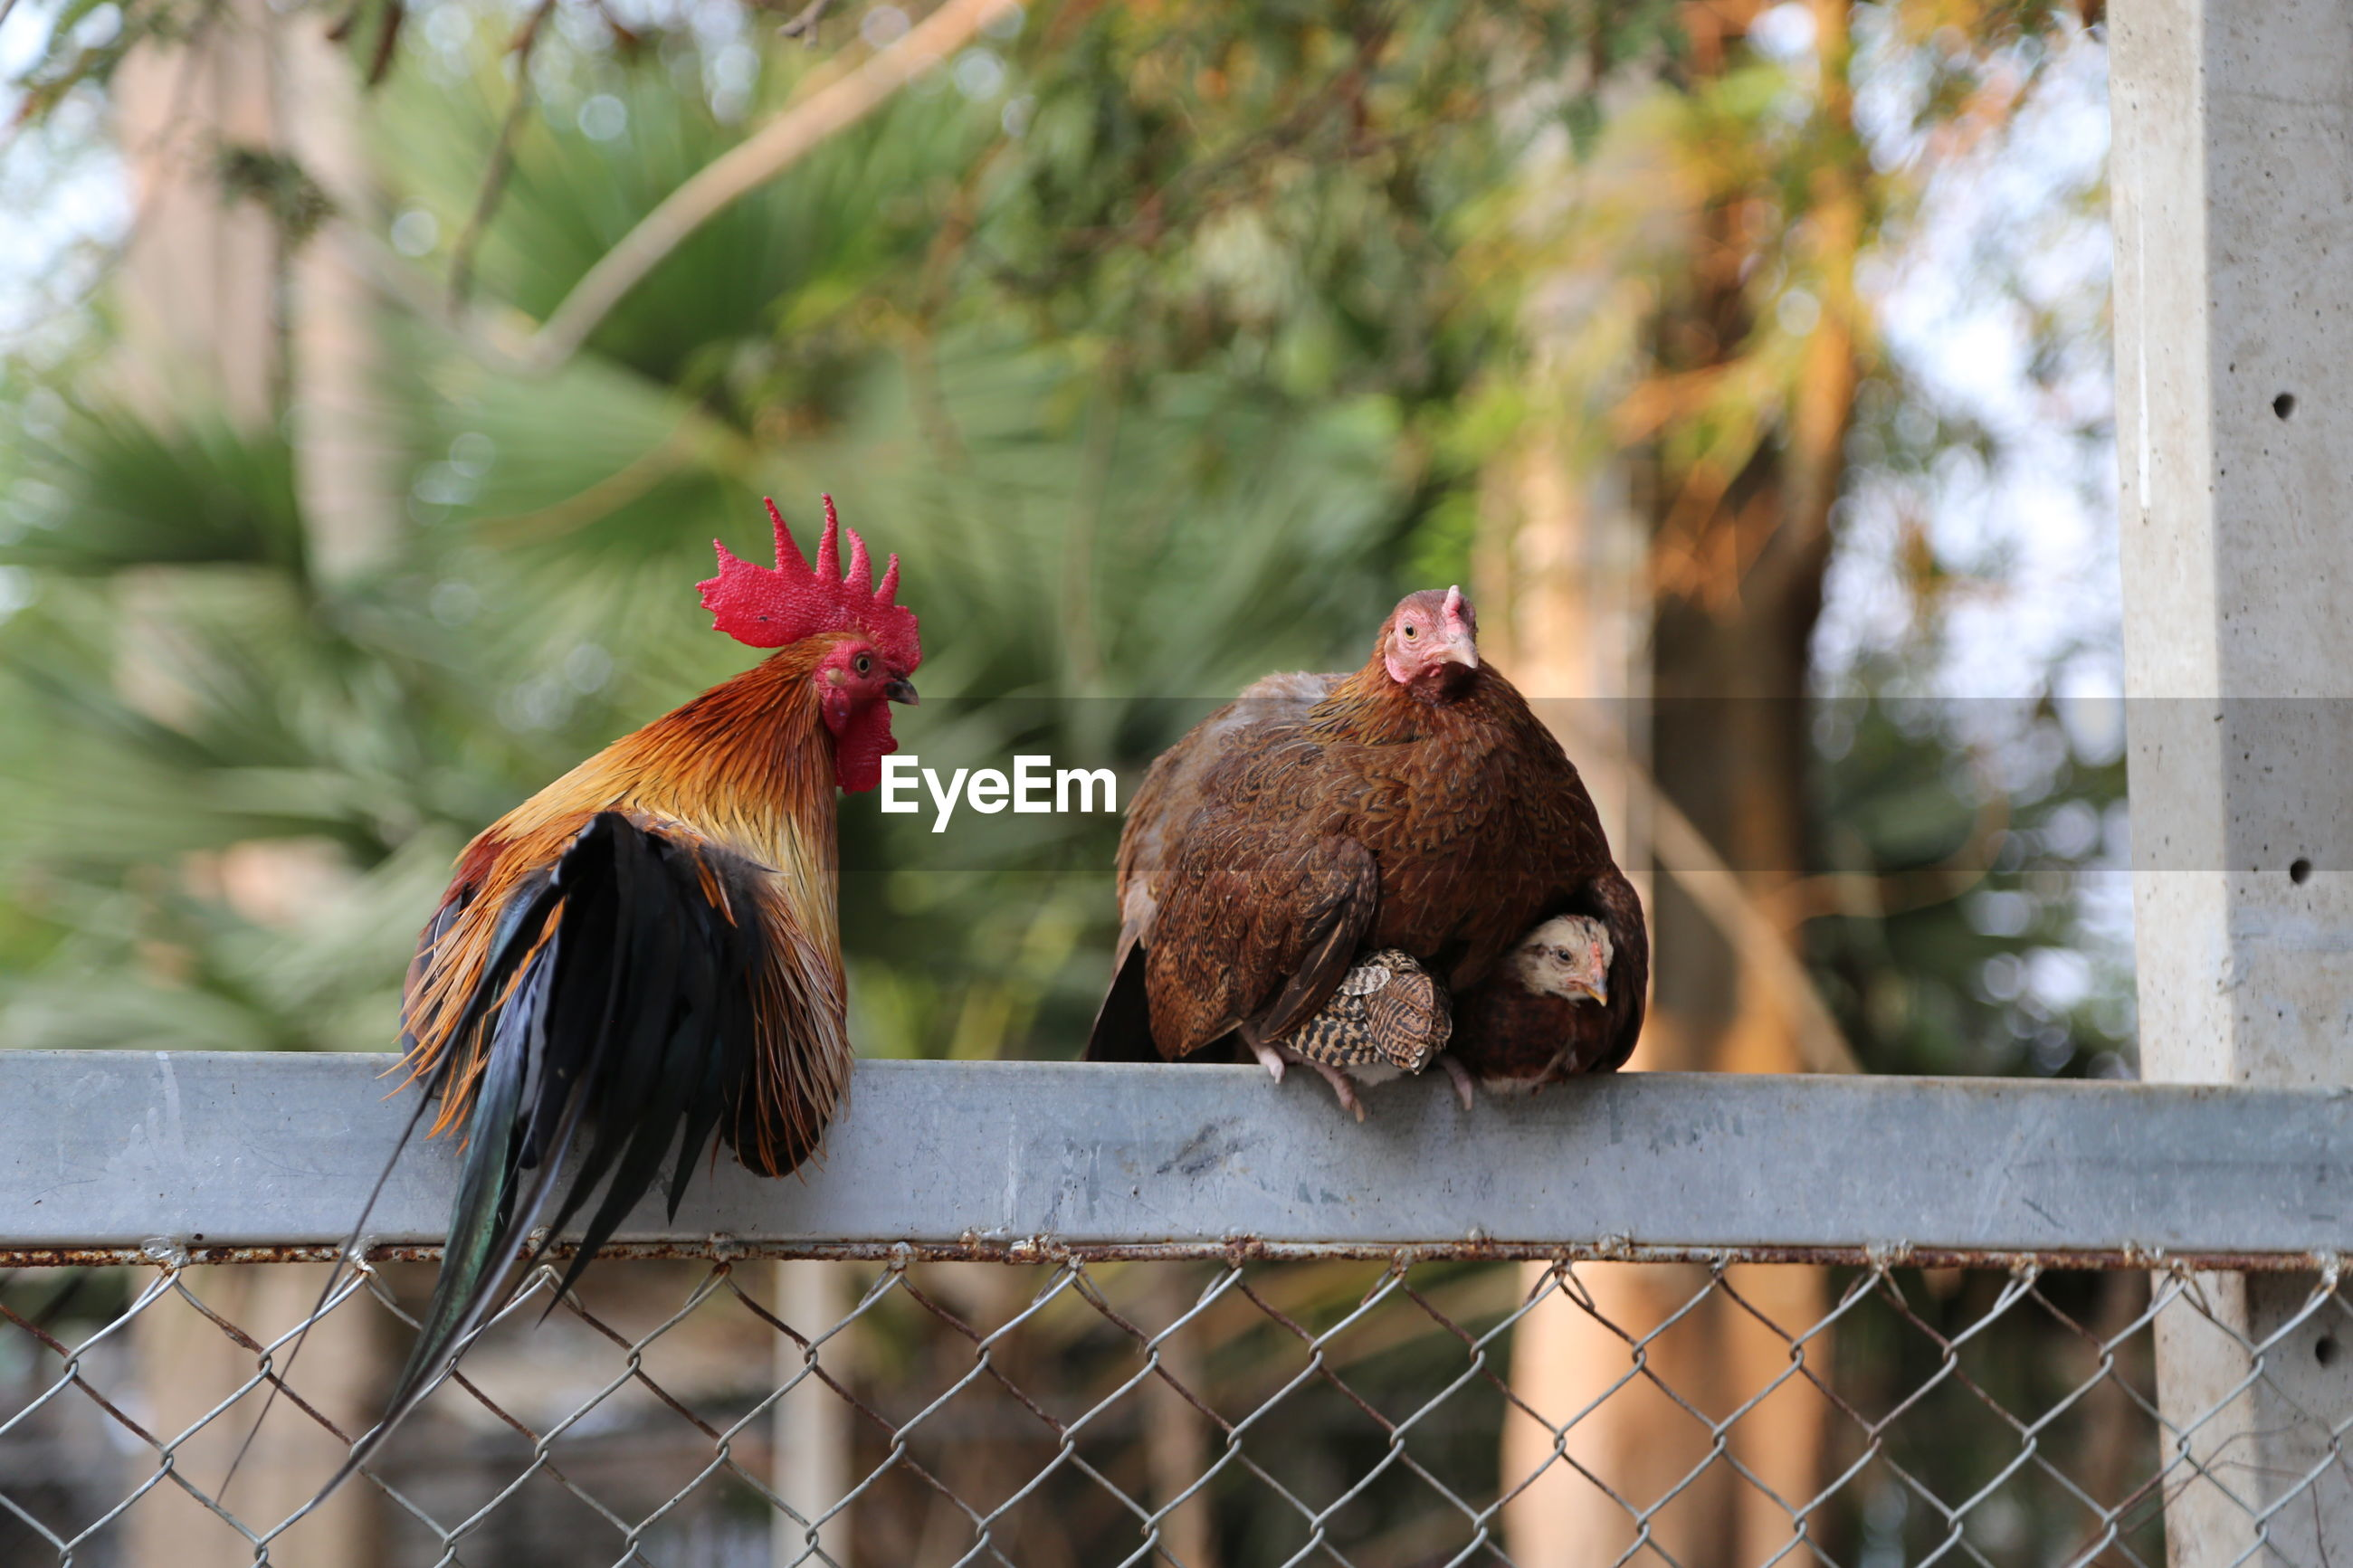 Hens perching on fence